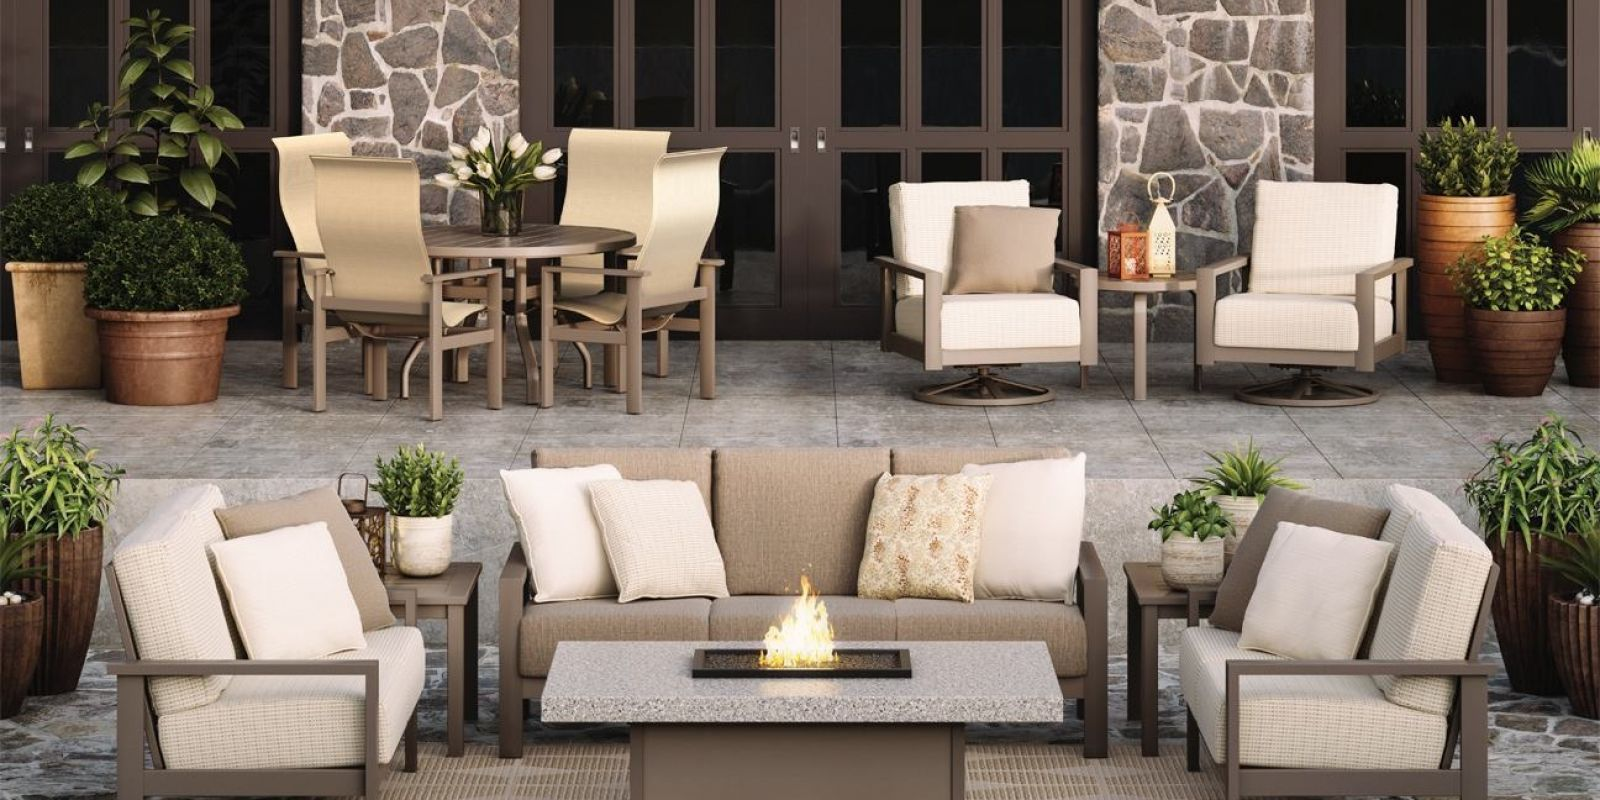 Outdoor Furniture | American Casual Living on Porch & Patio Casual Living id=37615